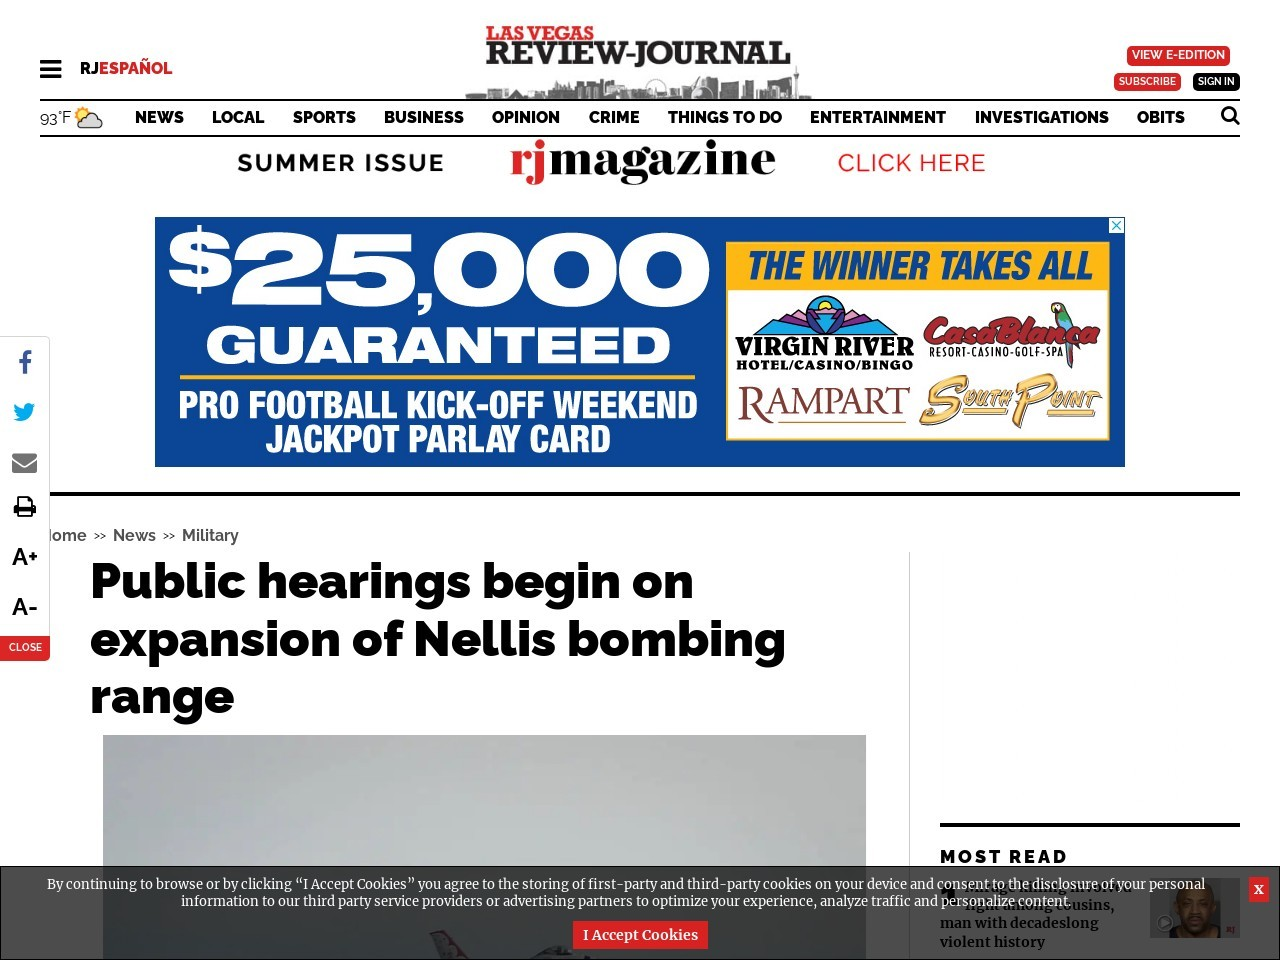 Public hearings begin on expansion of Nellis bombing range